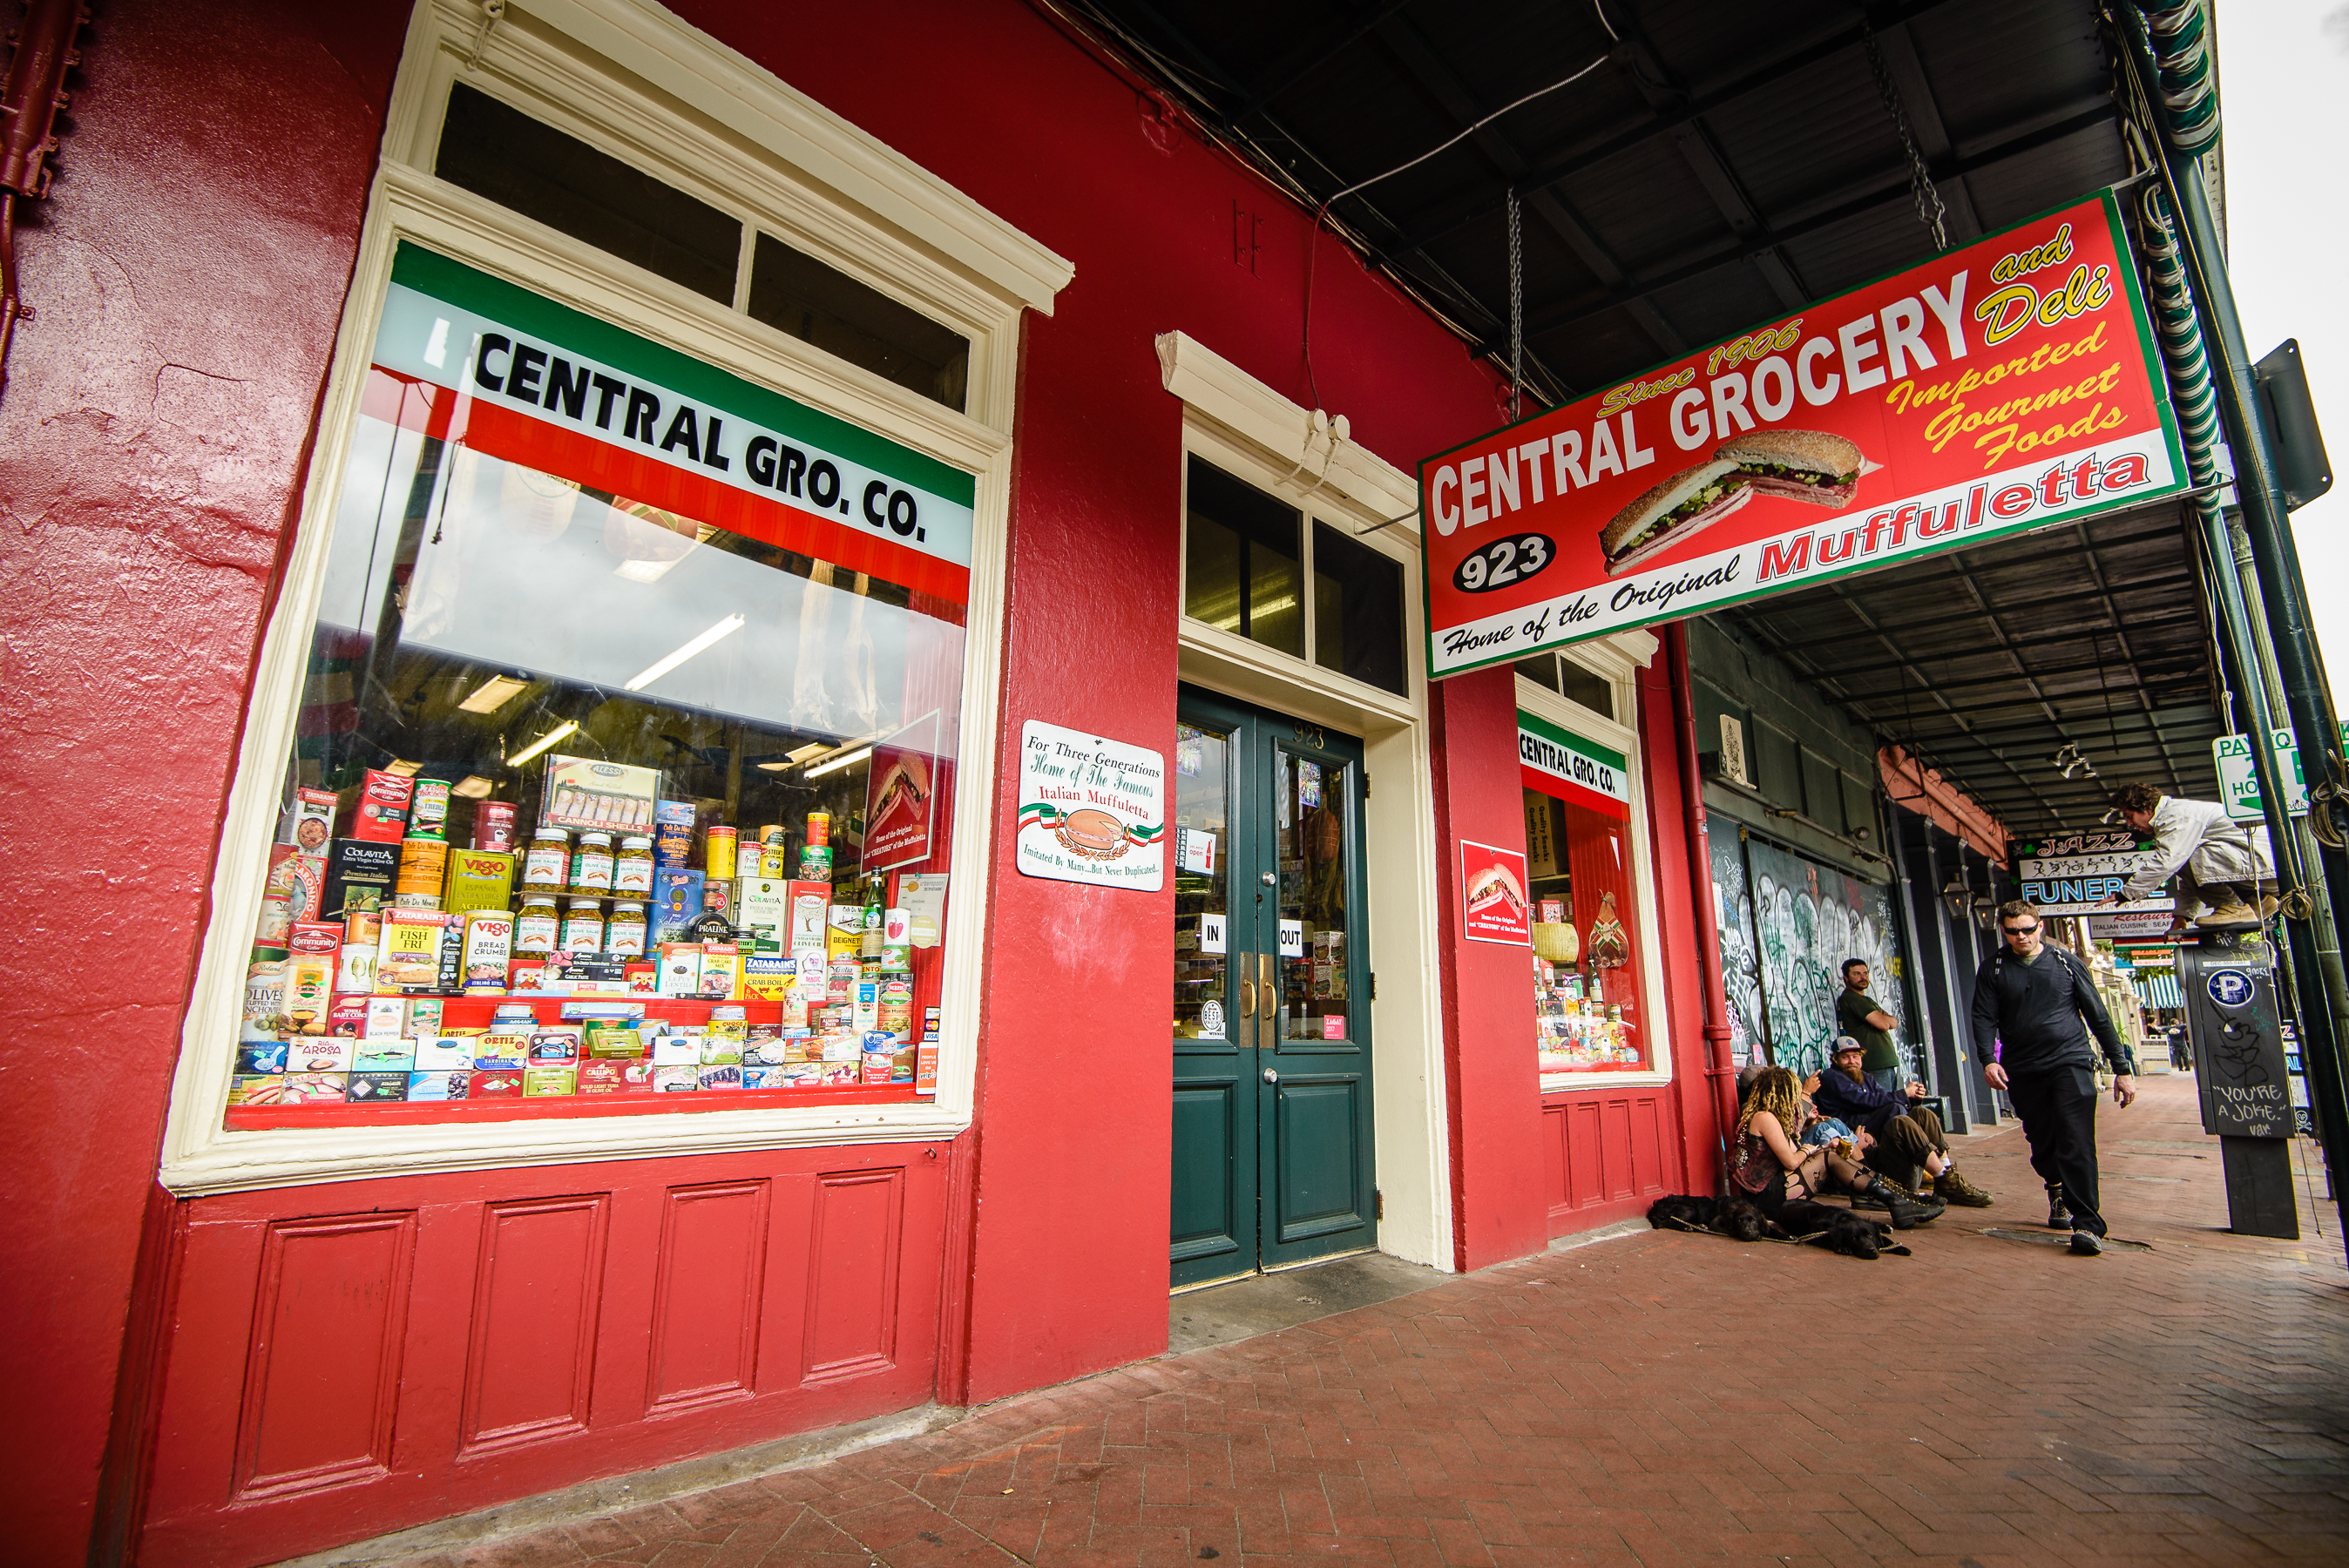 central grocery, muffaleta sandwich, nola lunch spots, kayaking, where to eat,